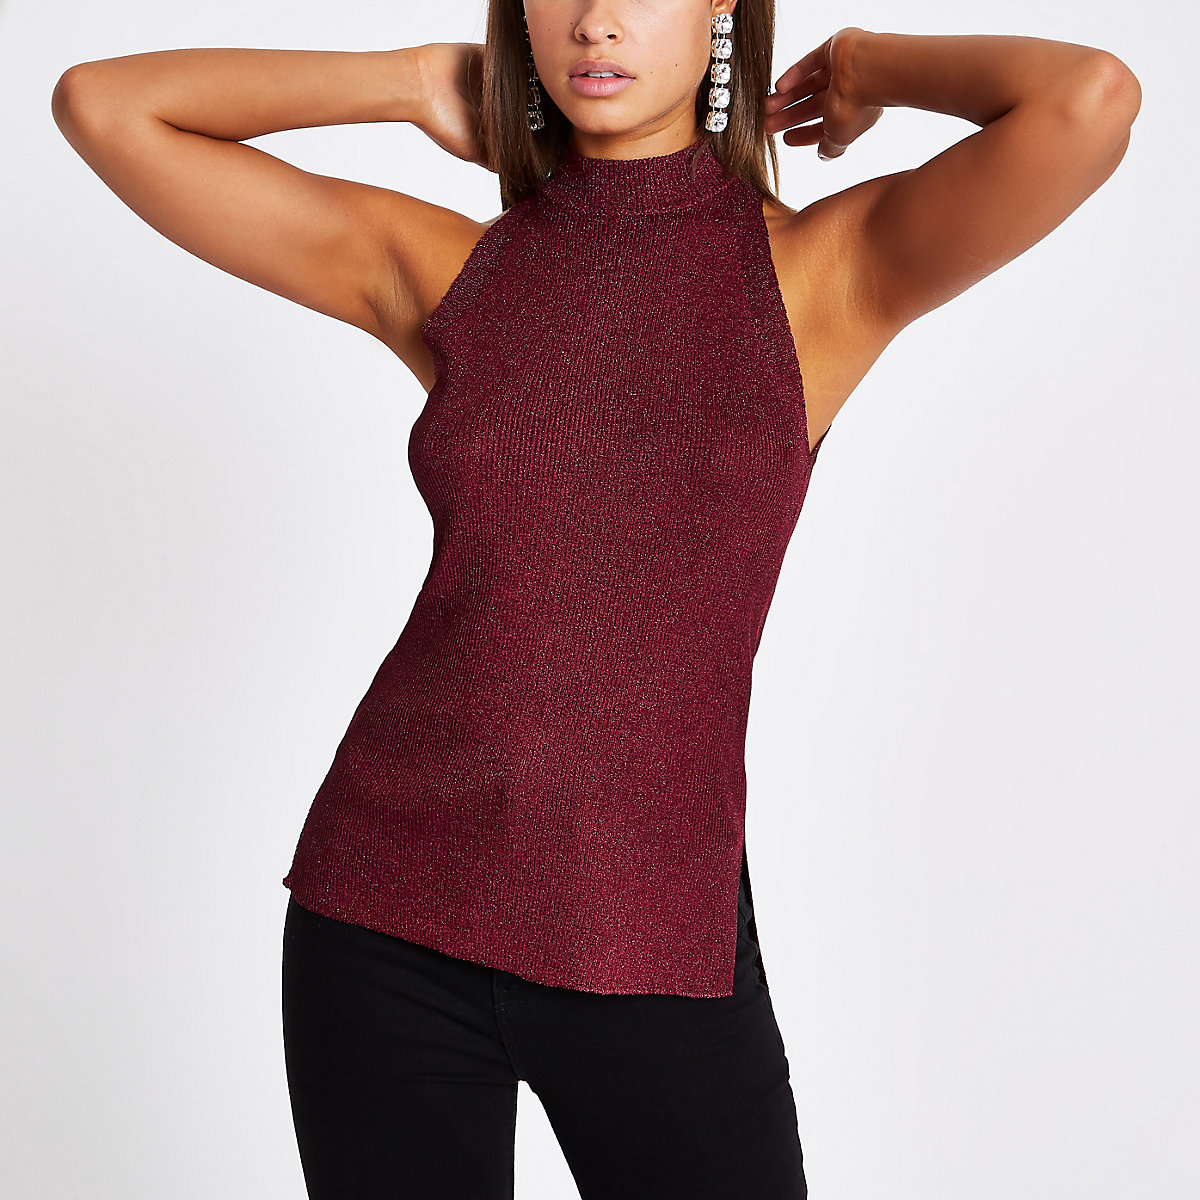 Burgundy knit sleeveless racerback tank top